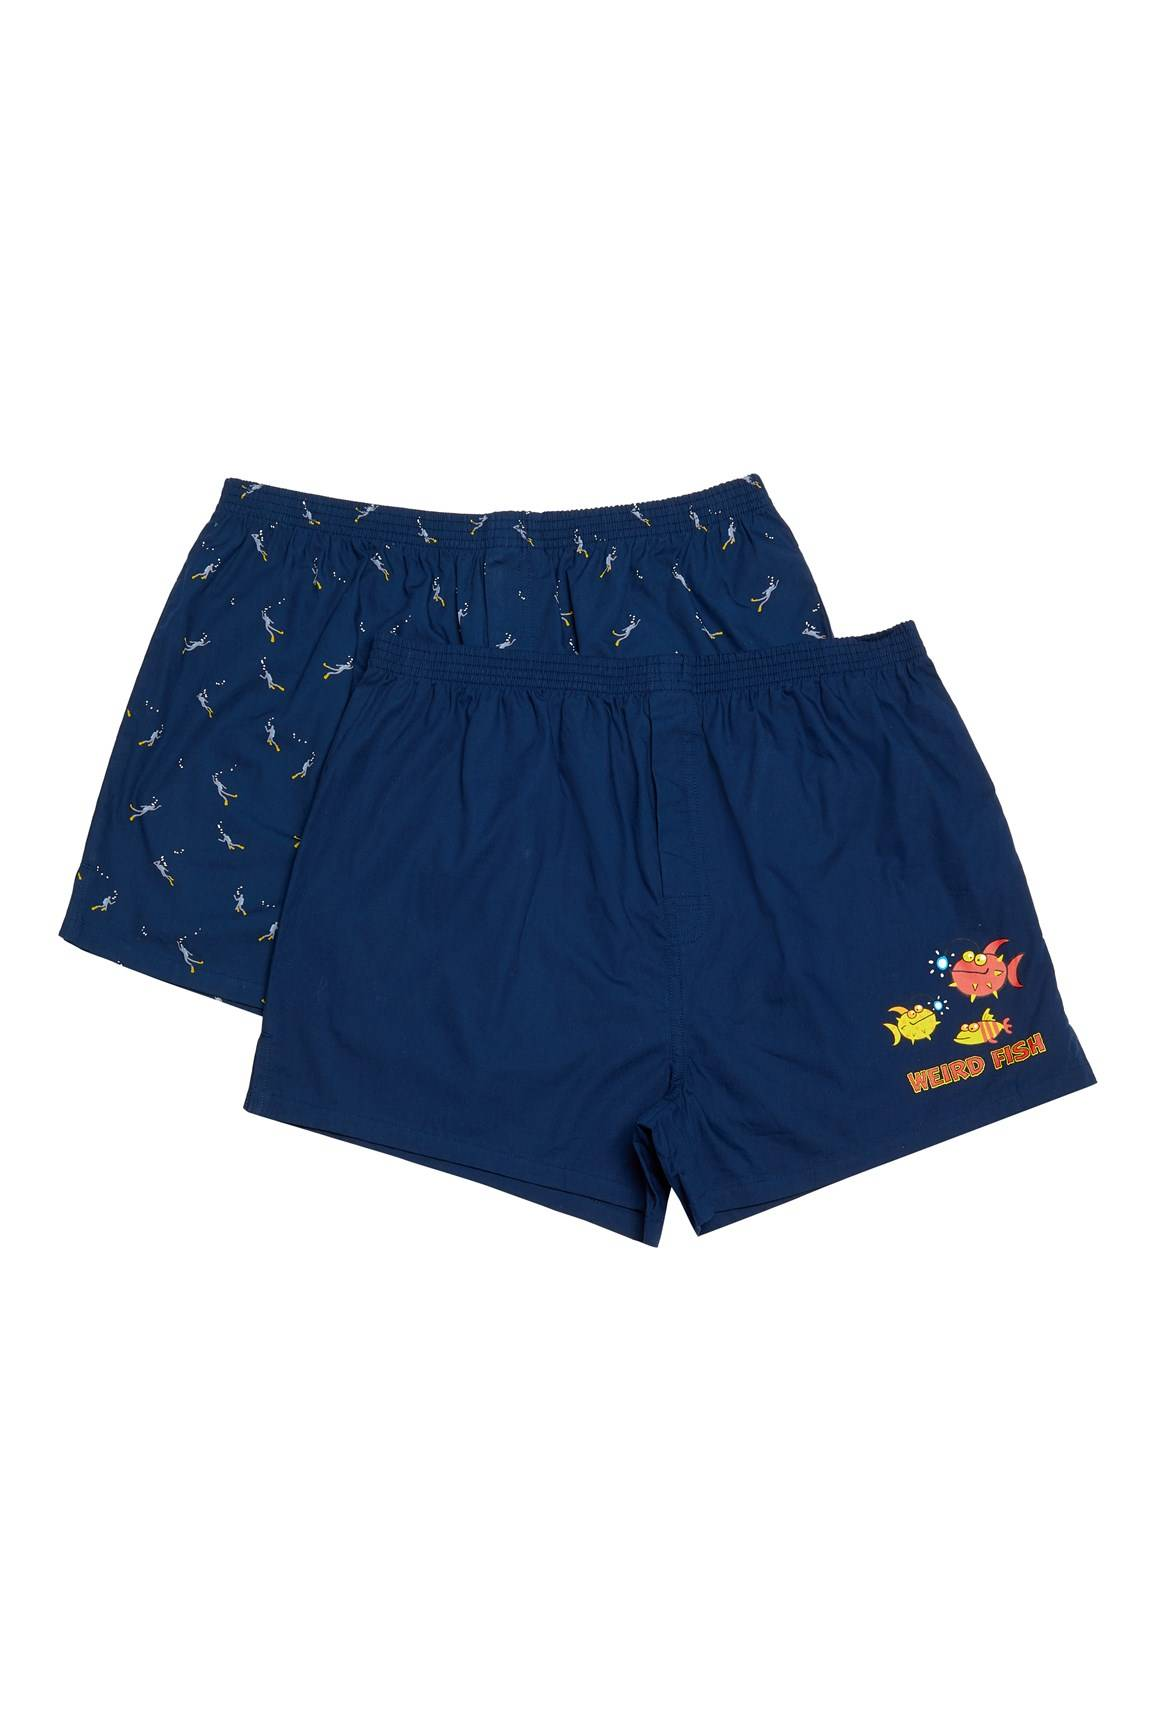 Weird Fish Harley Boxer Shorts Twin Pack Navy Size XL